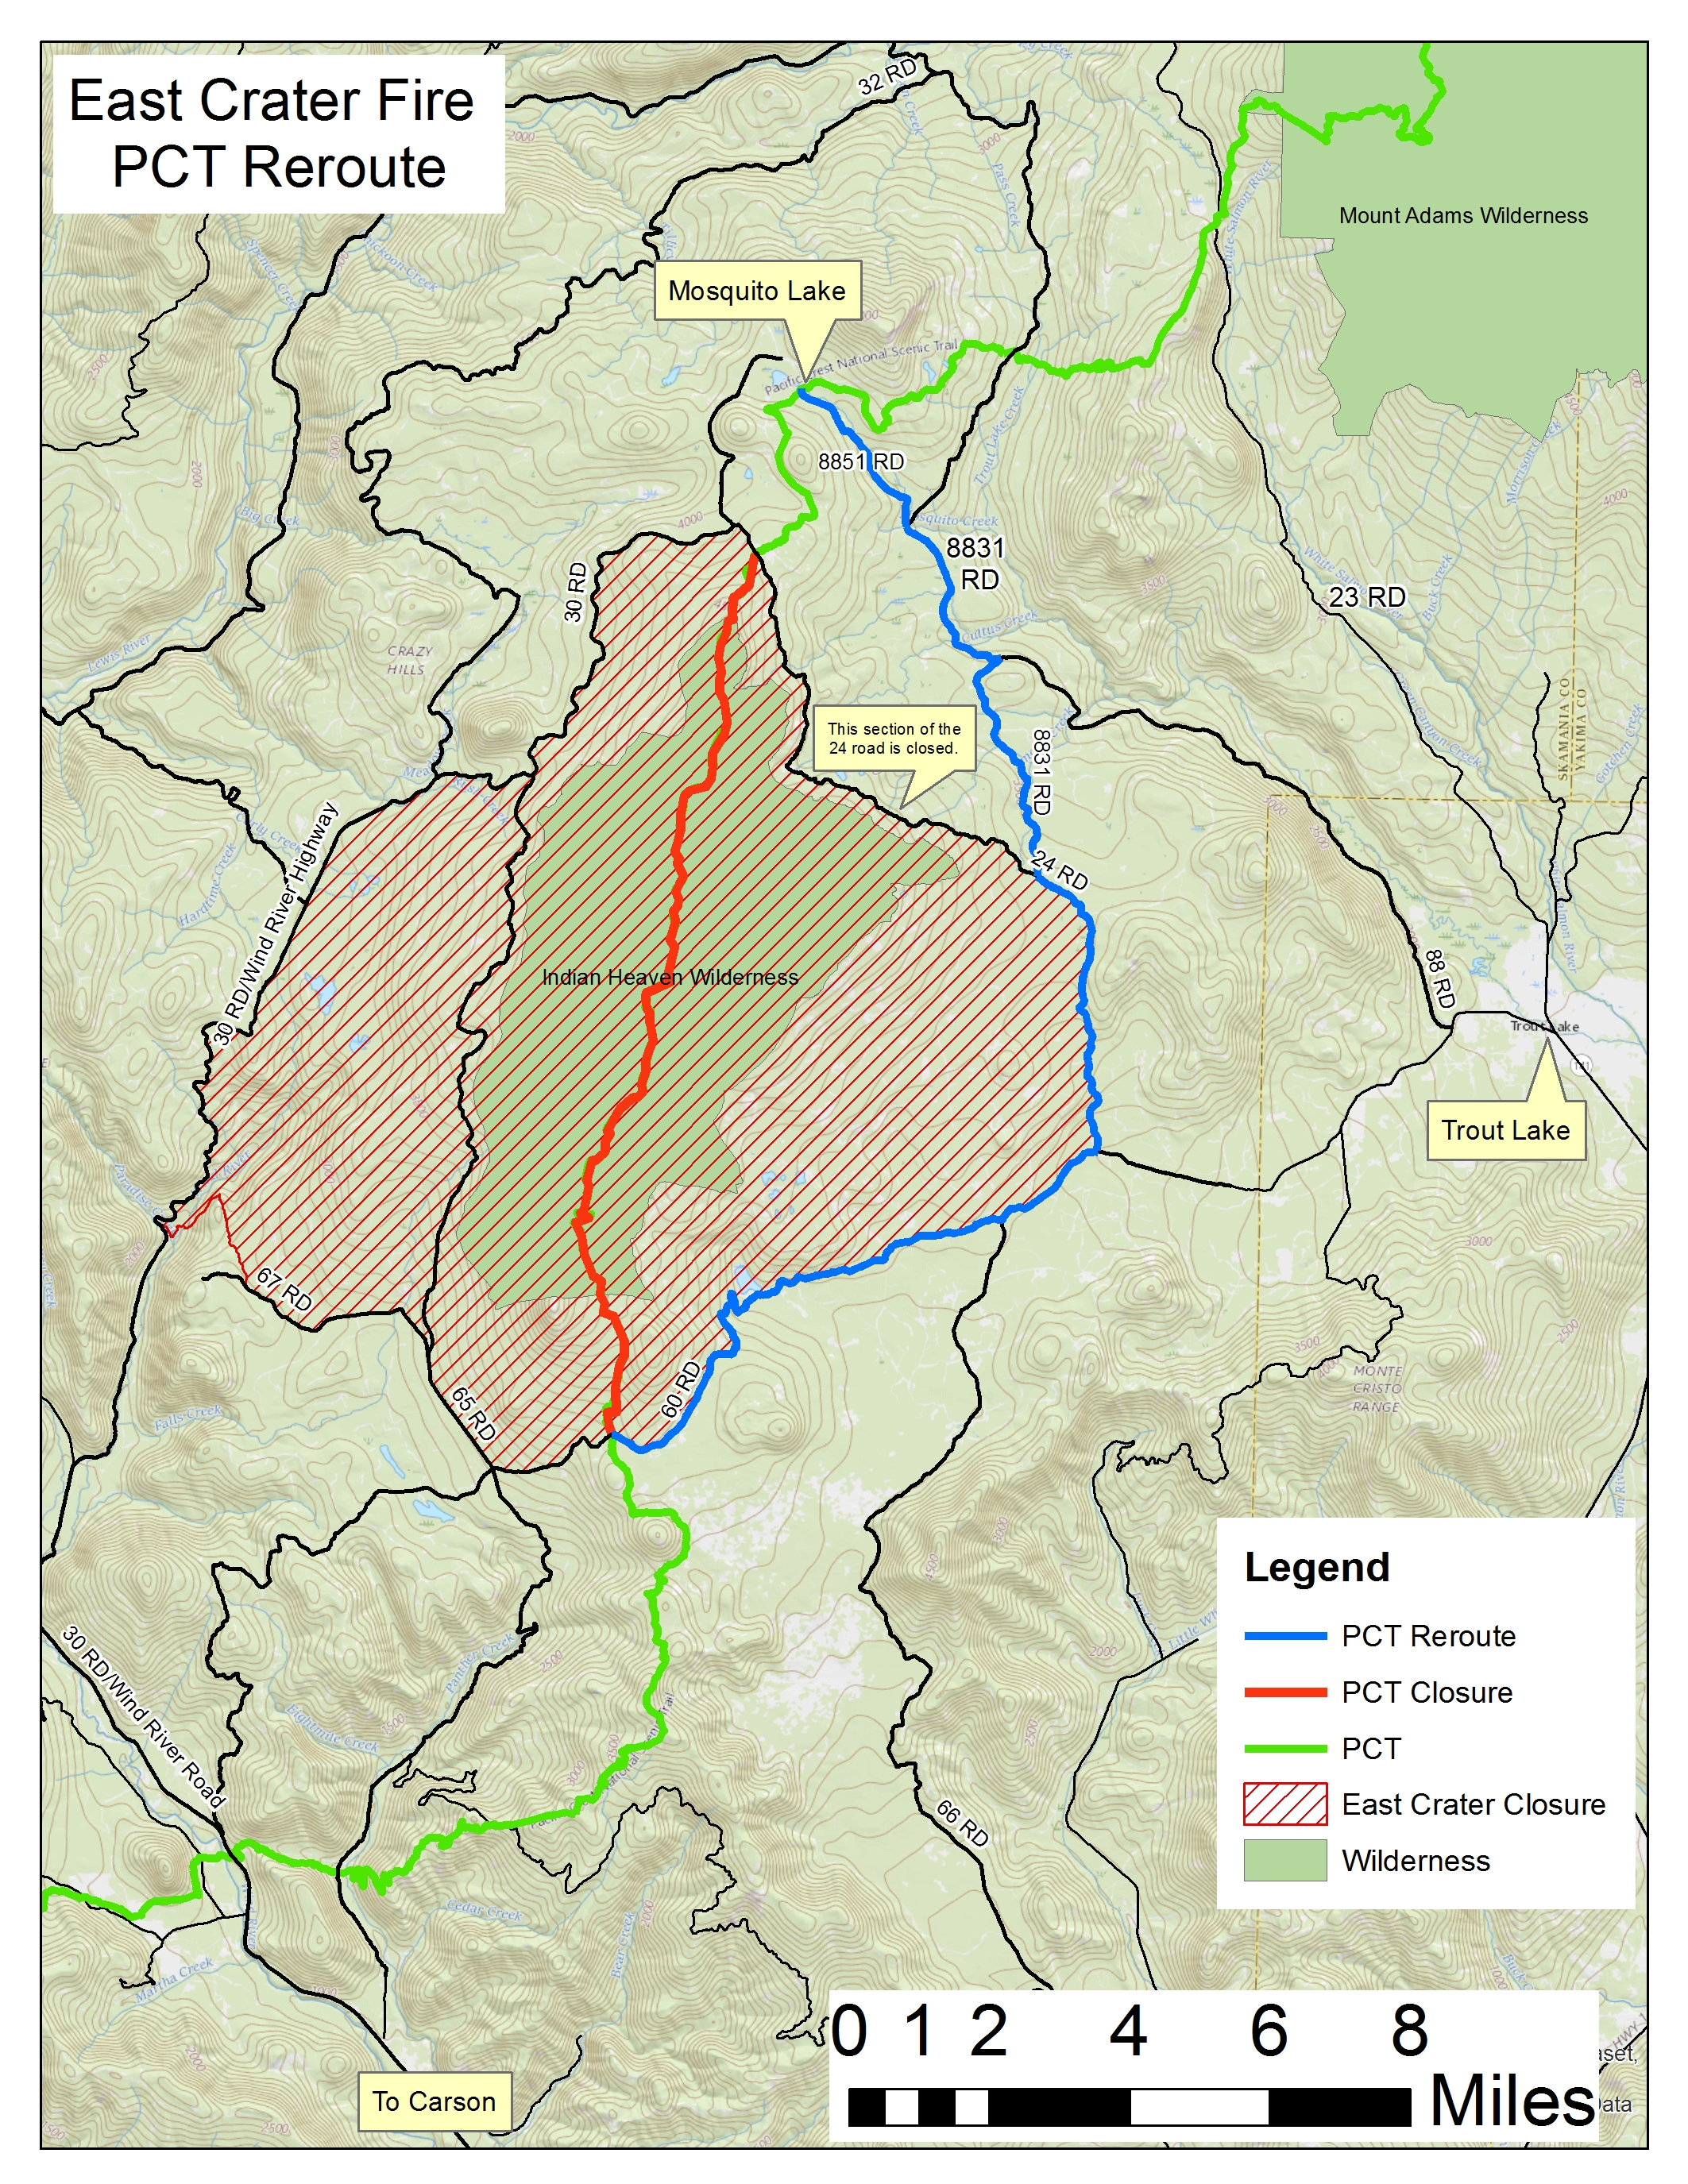 8 Closures on Pacific Crest Trail Due to Fire Right Now - SnowBrains